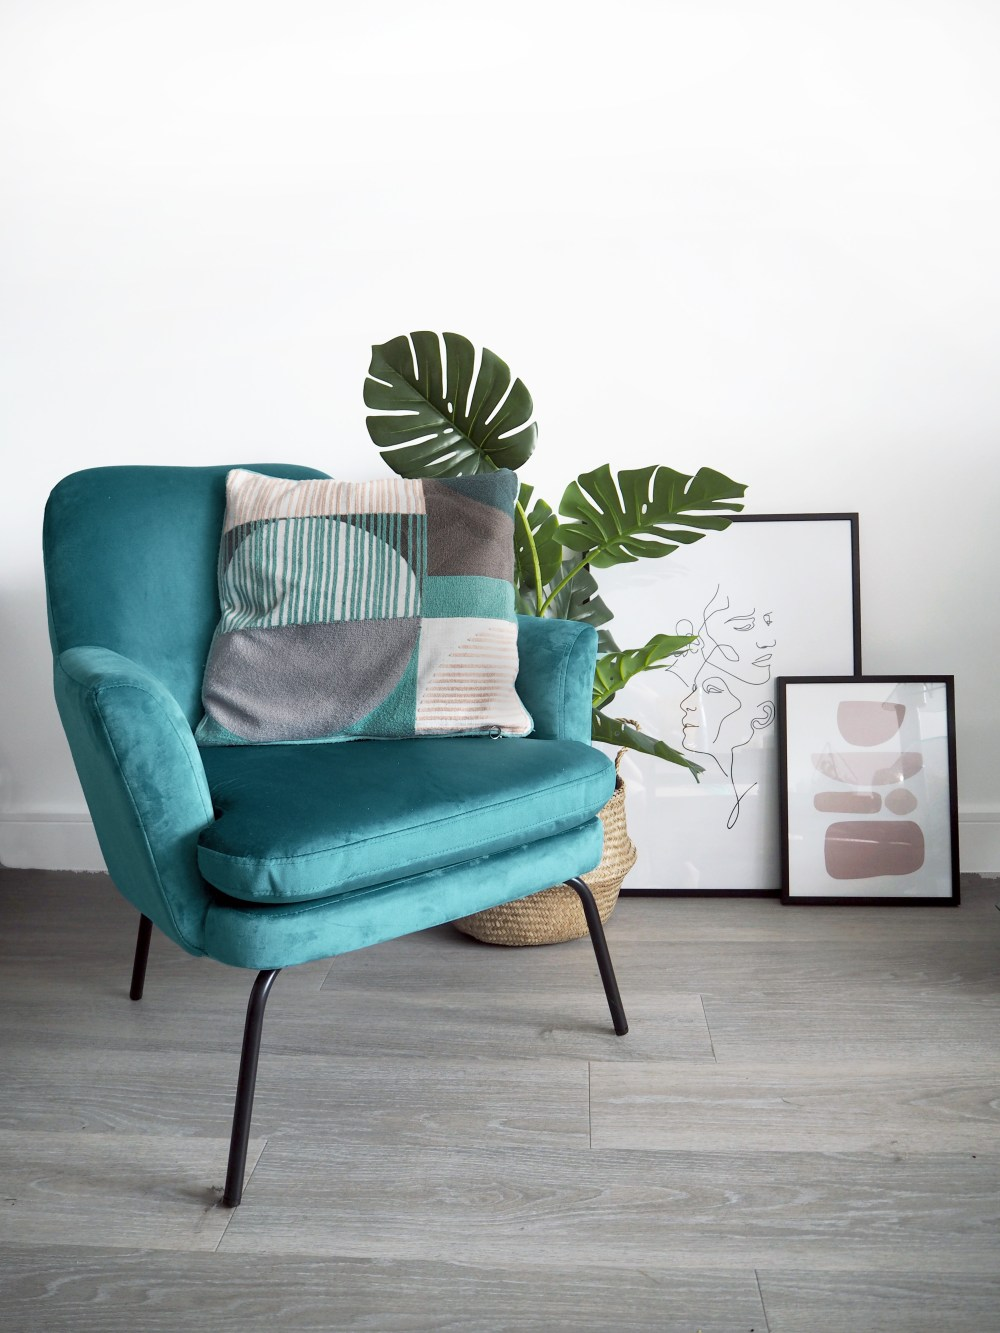 Teal velvet armchair with a plant and some abstract art prints